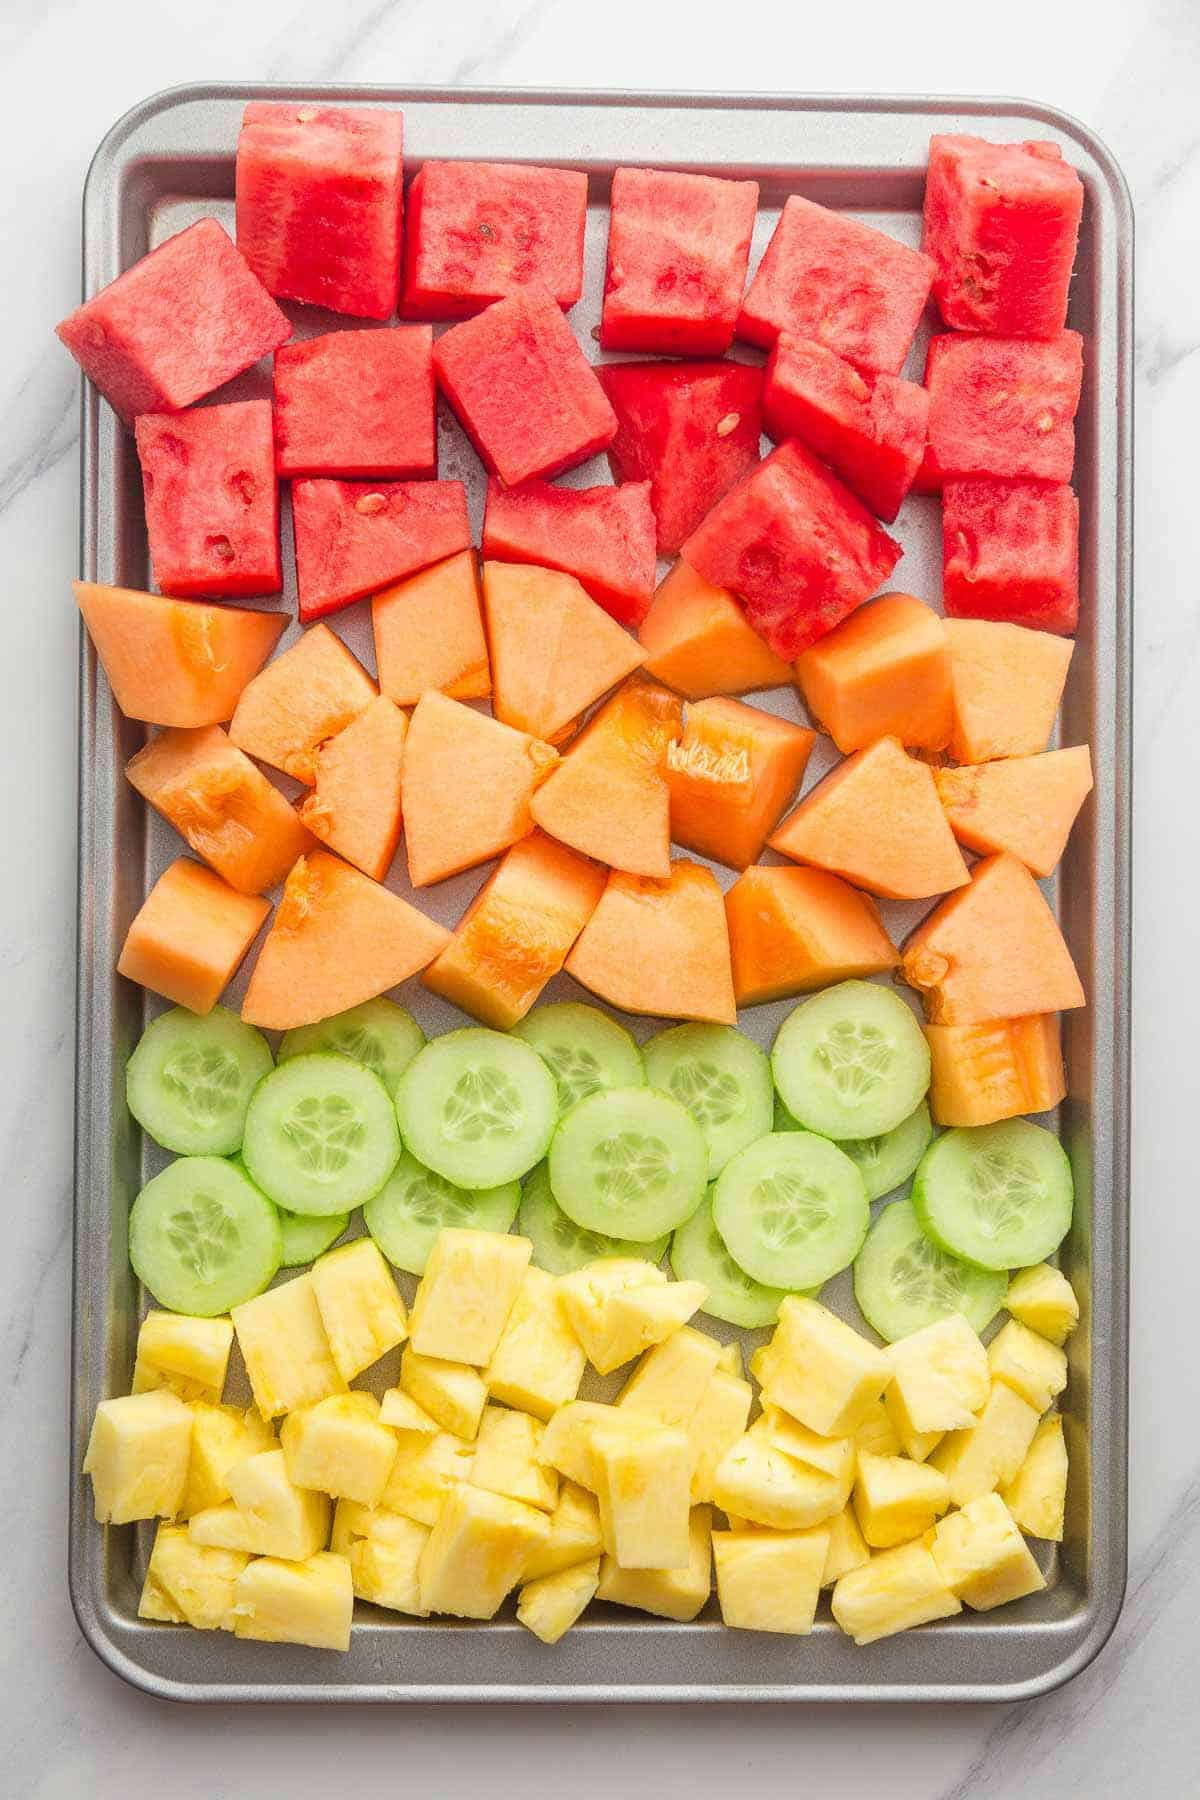 Chopped up fruit on a tray, watermelon, melon, cucumber, and pineapple.